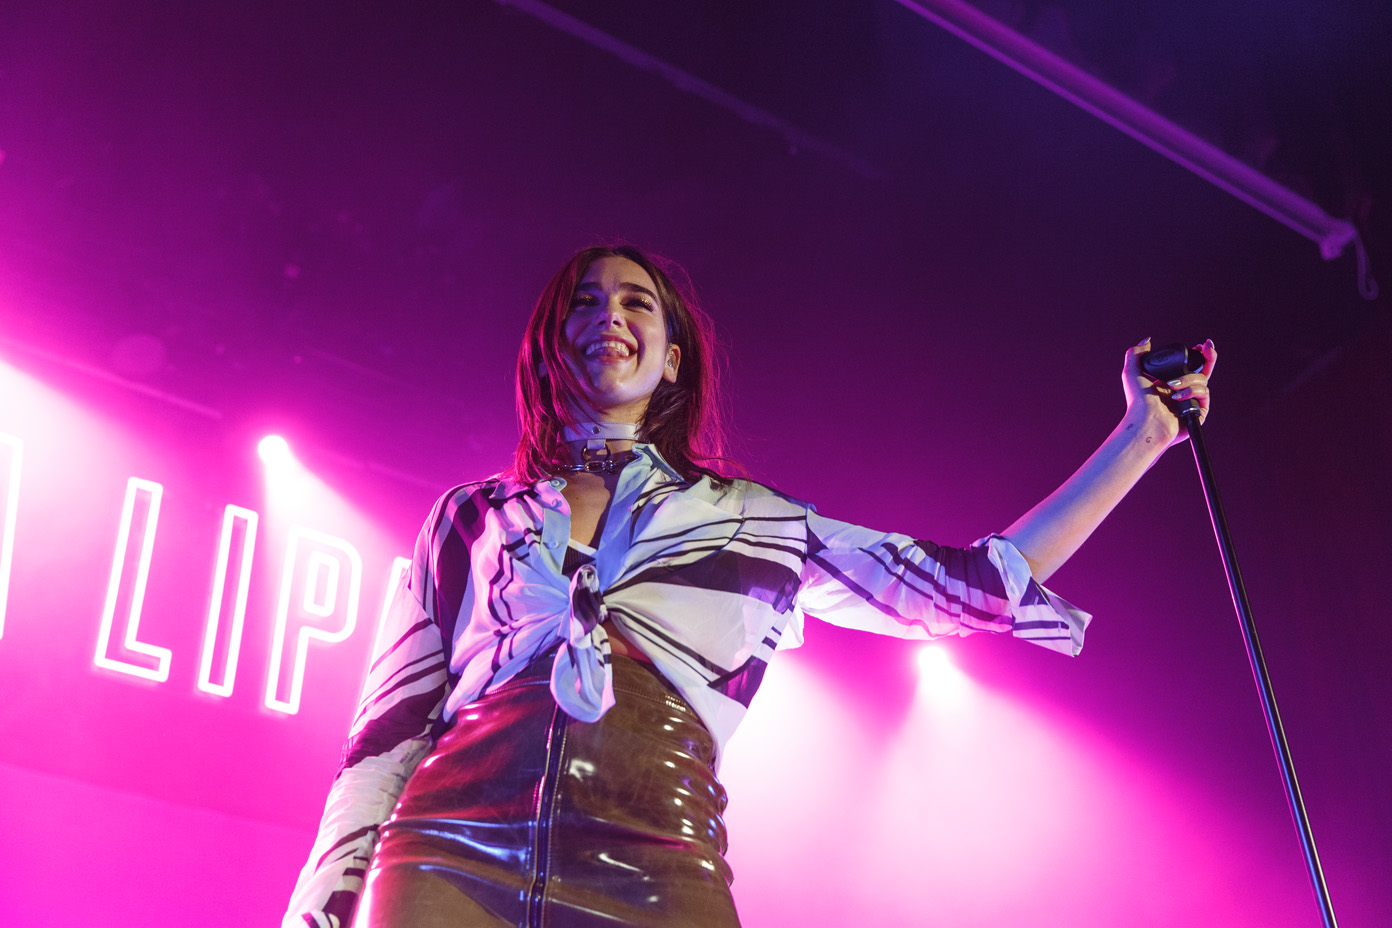 Dua Lipa on stage at the O2 Ritz Manchester on 12 April 2017. Photo: Katy BlackwoodDua Lipa on stage at the O2 Ritz Manchester on 12 April 2017. Photo: Katy Blackwood